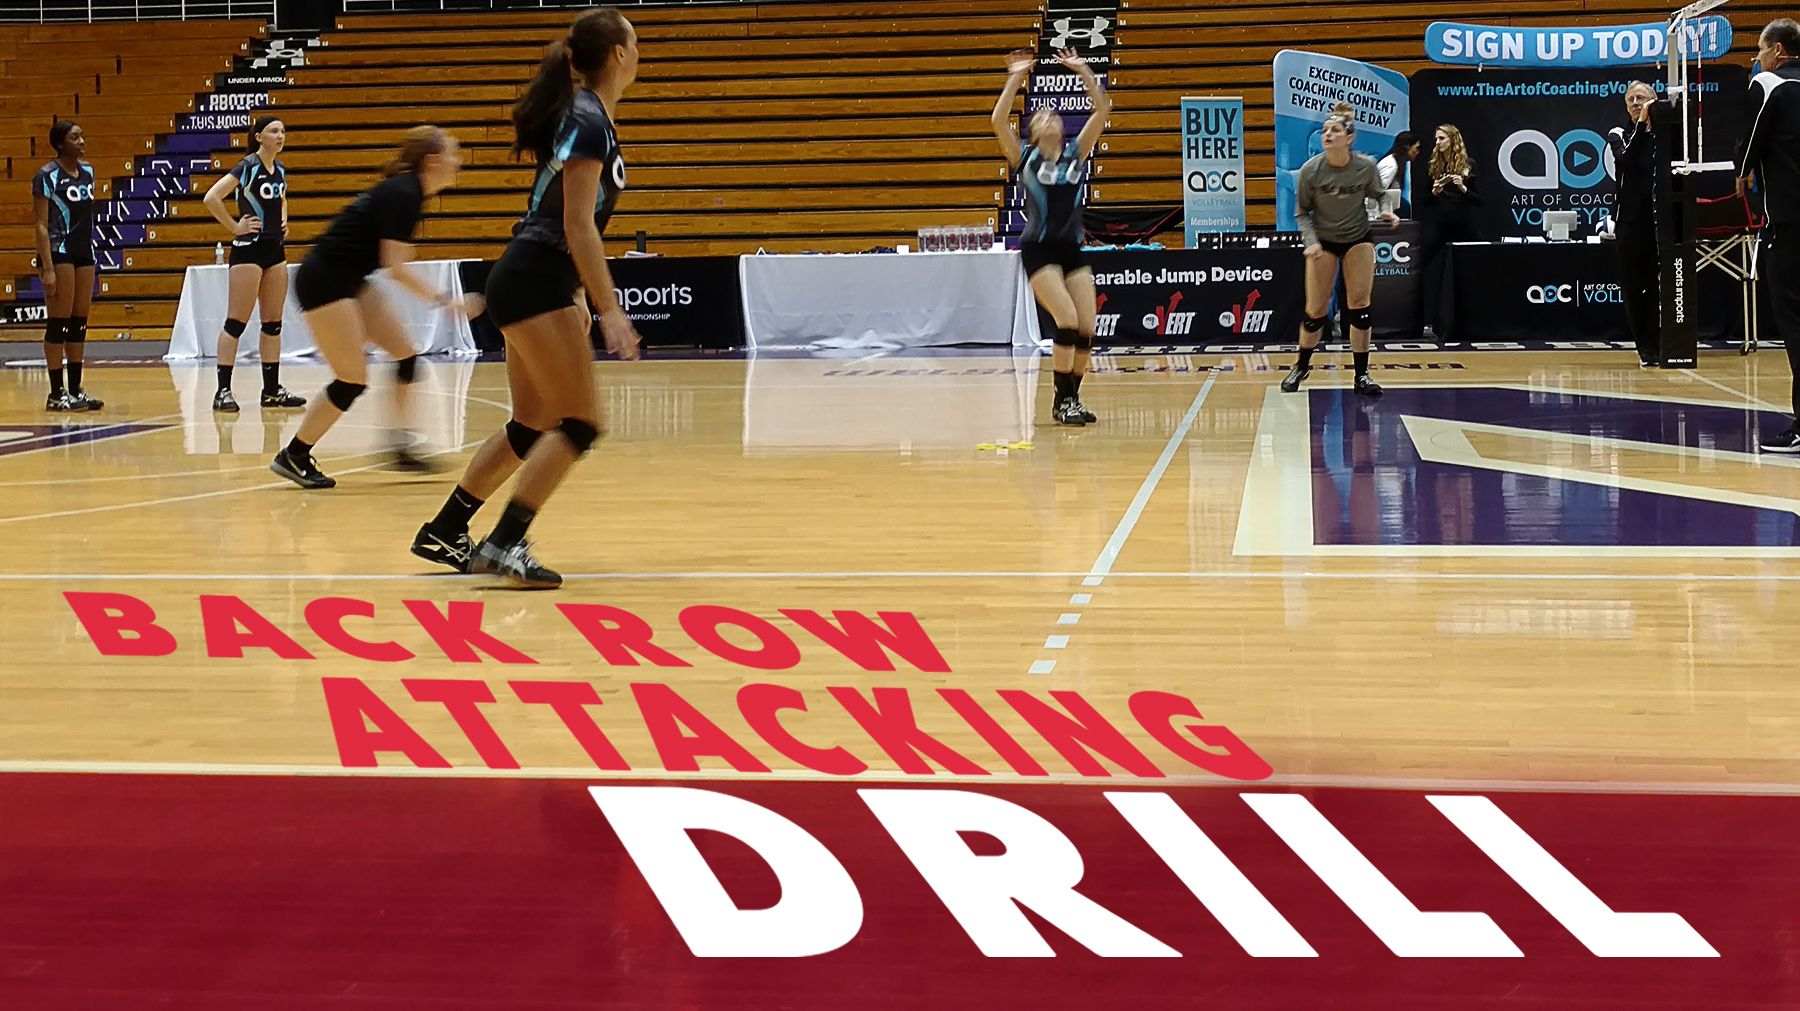 Reinforce Hitting Basics With Back Row Attack Drill The Art Of Coaching Volleyball Coaching Volleyball Volleyball Skills Volleyball Training